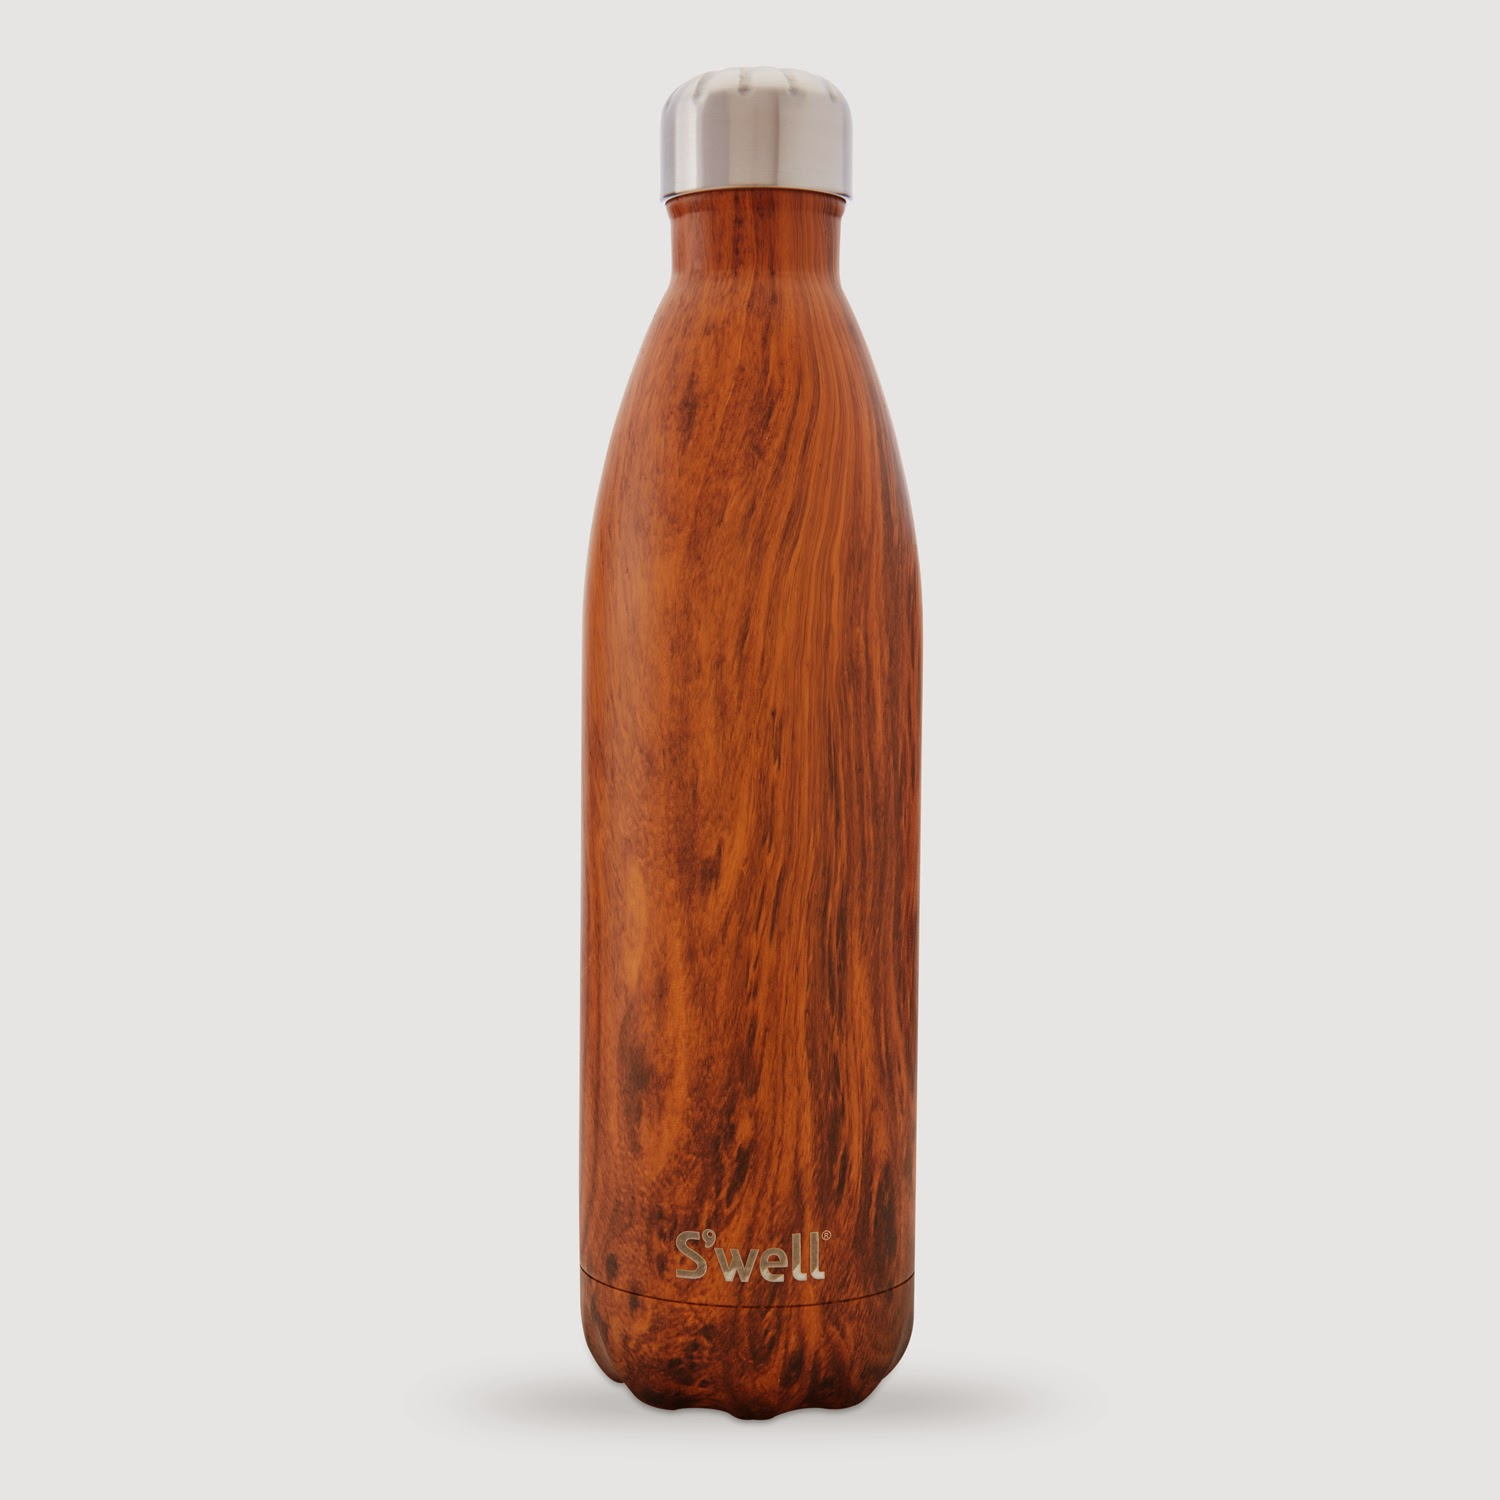 Vanichi blog editor 39 s pick s 39 well reusable bottles Reusable wood